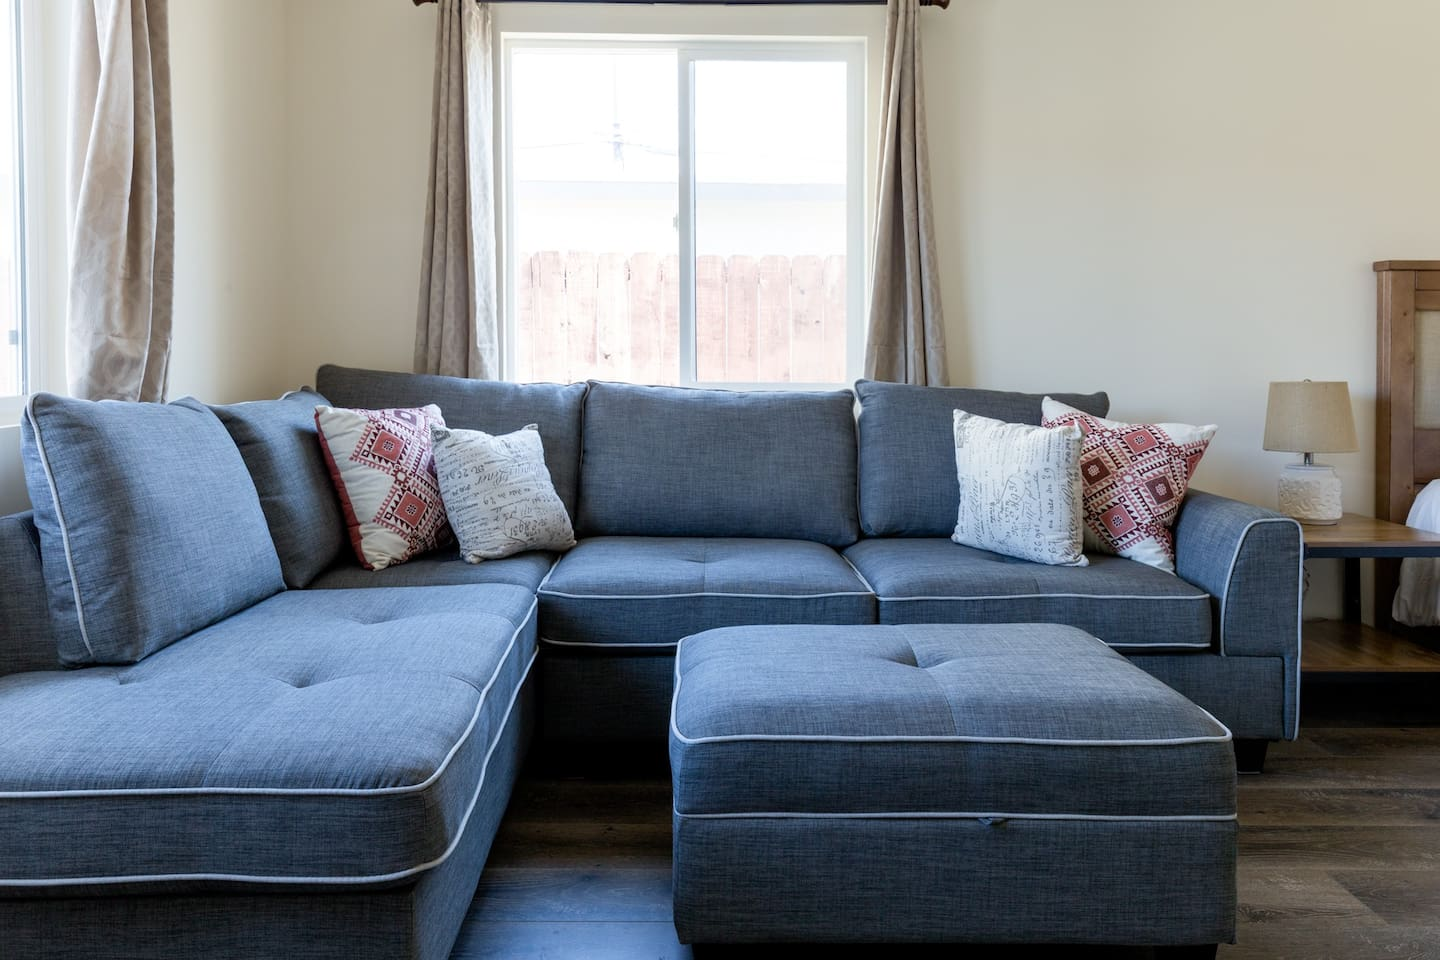 Spacious living room/ bedroom with comfortable seating. Bright and air.